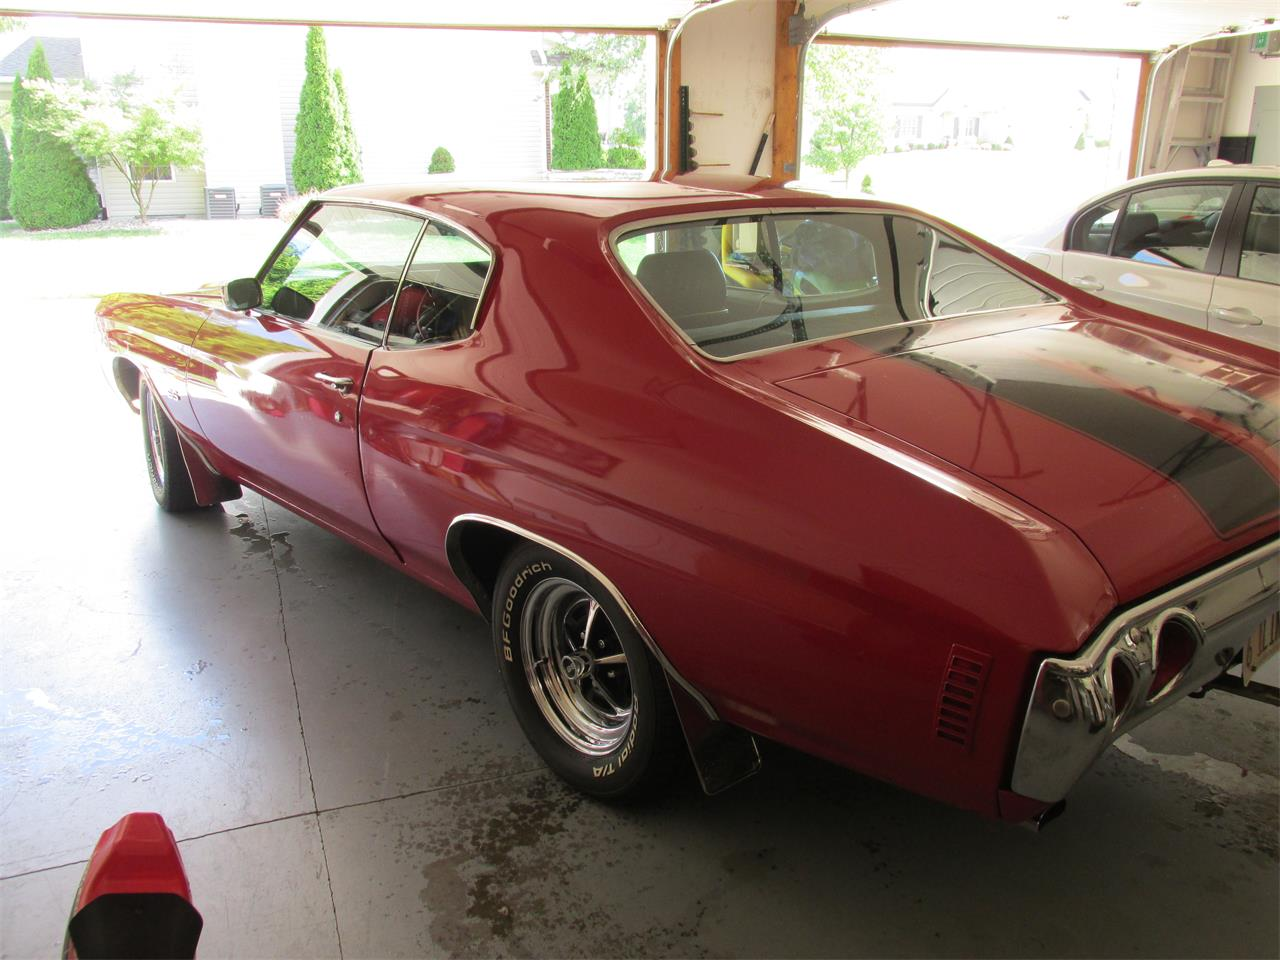 Large Picture of Classic '71 Chevelle SS located in Illinois - $26,500.00 Offered by a Private Seller - JRT1